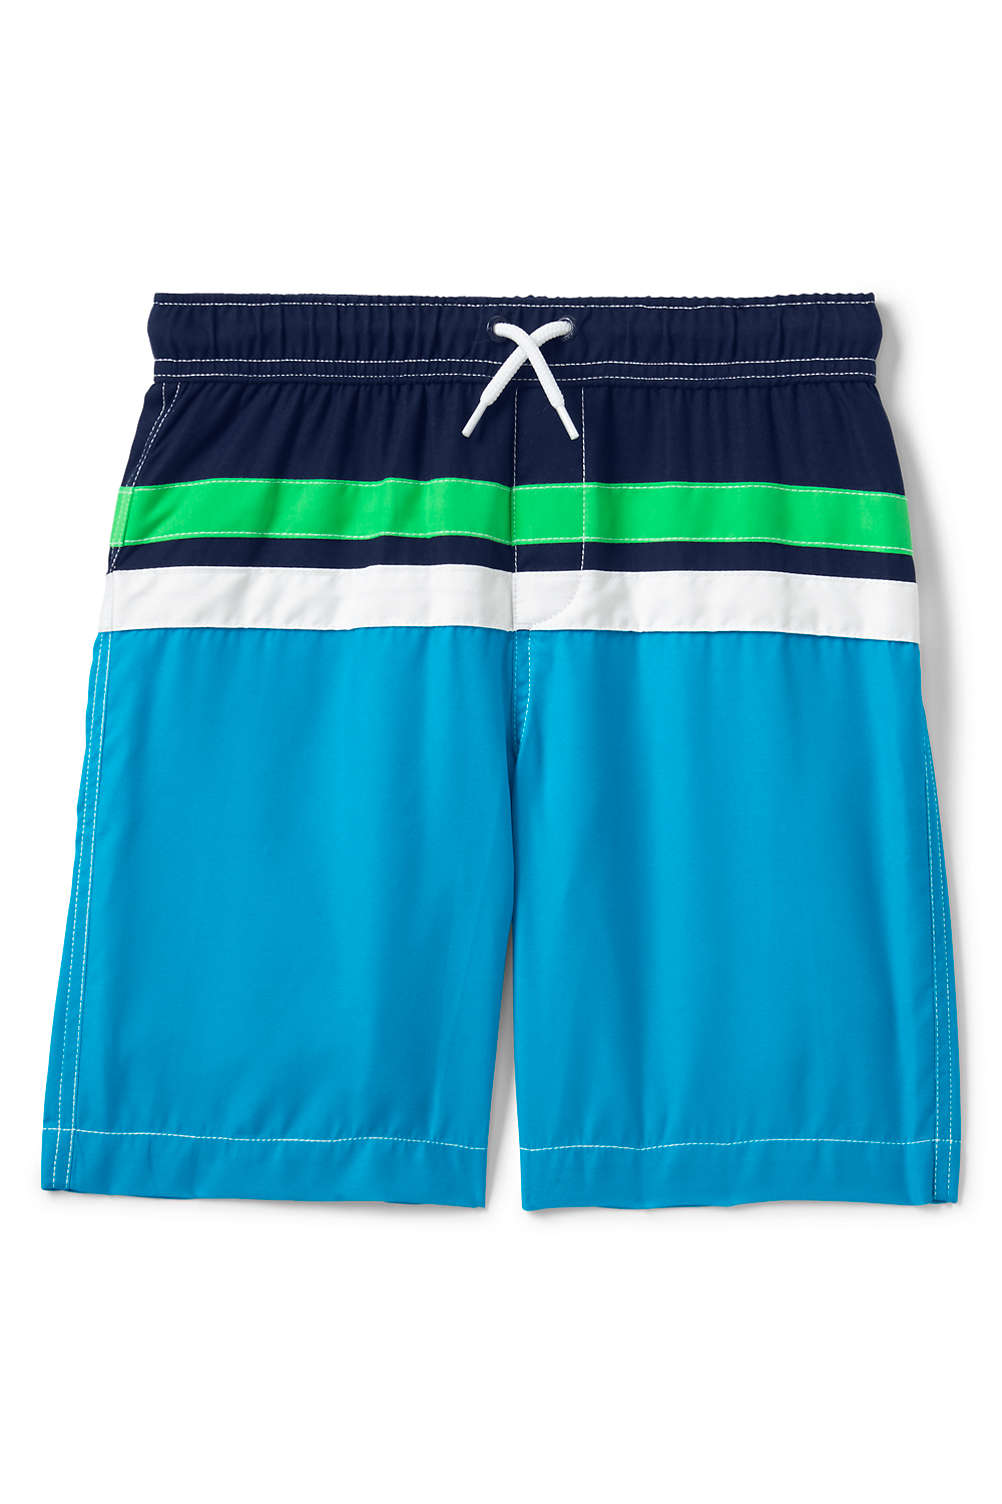 d79764f176 Boys Colorblock Swim Trunk from Lands' End